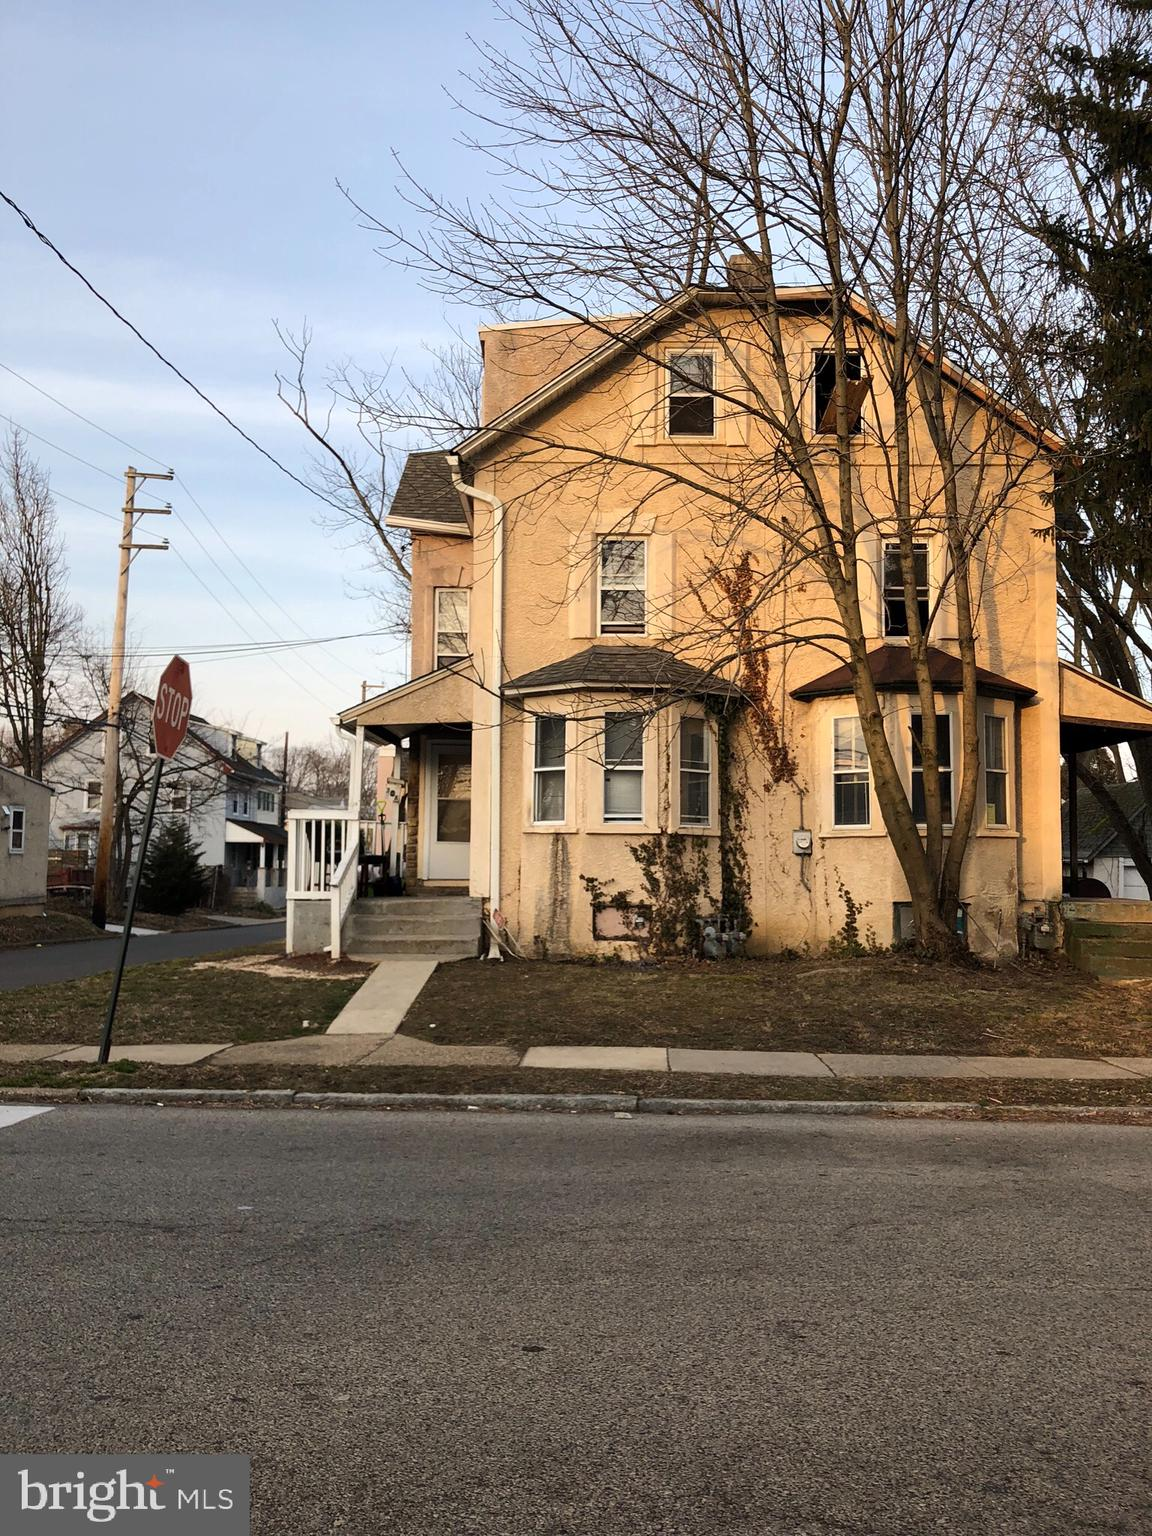 37 WALNUT STREET, MORTON, PA 19070